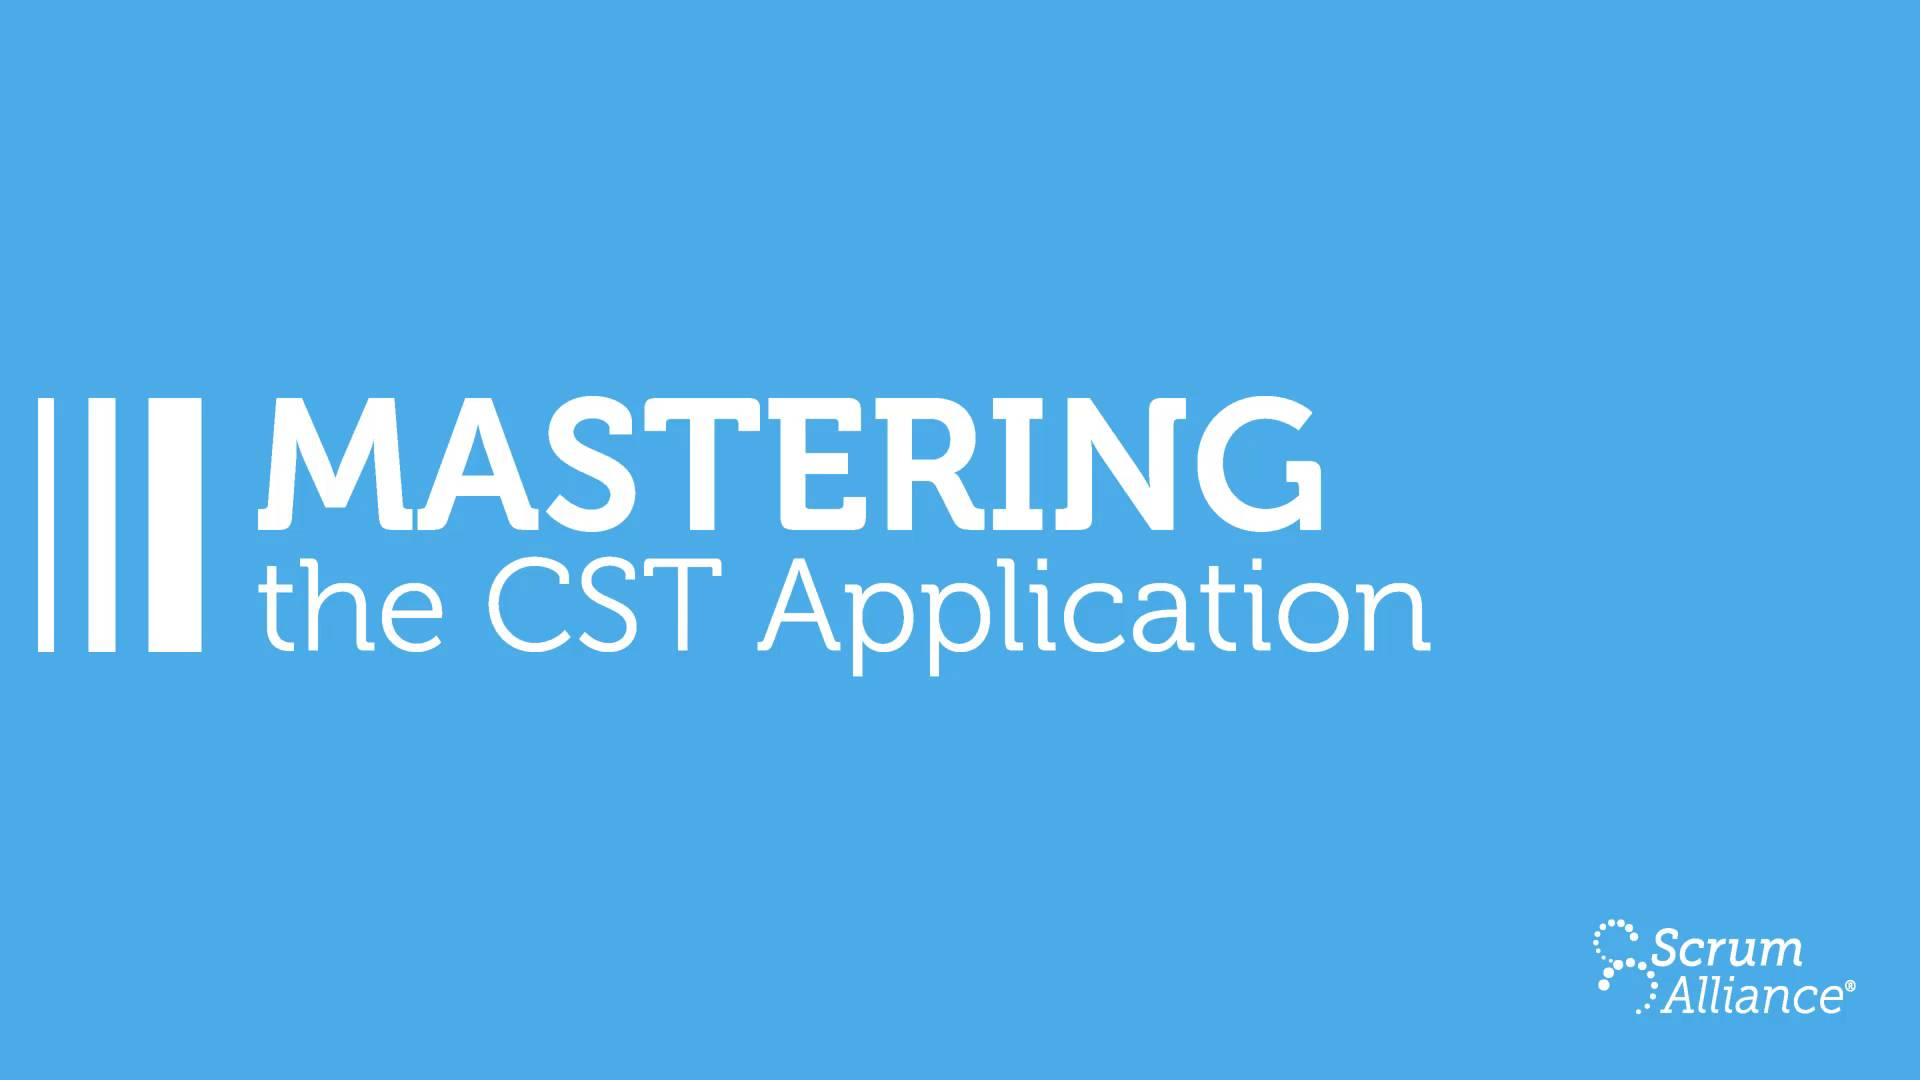 Certified Scrum Trainer Cst Certification Application Process